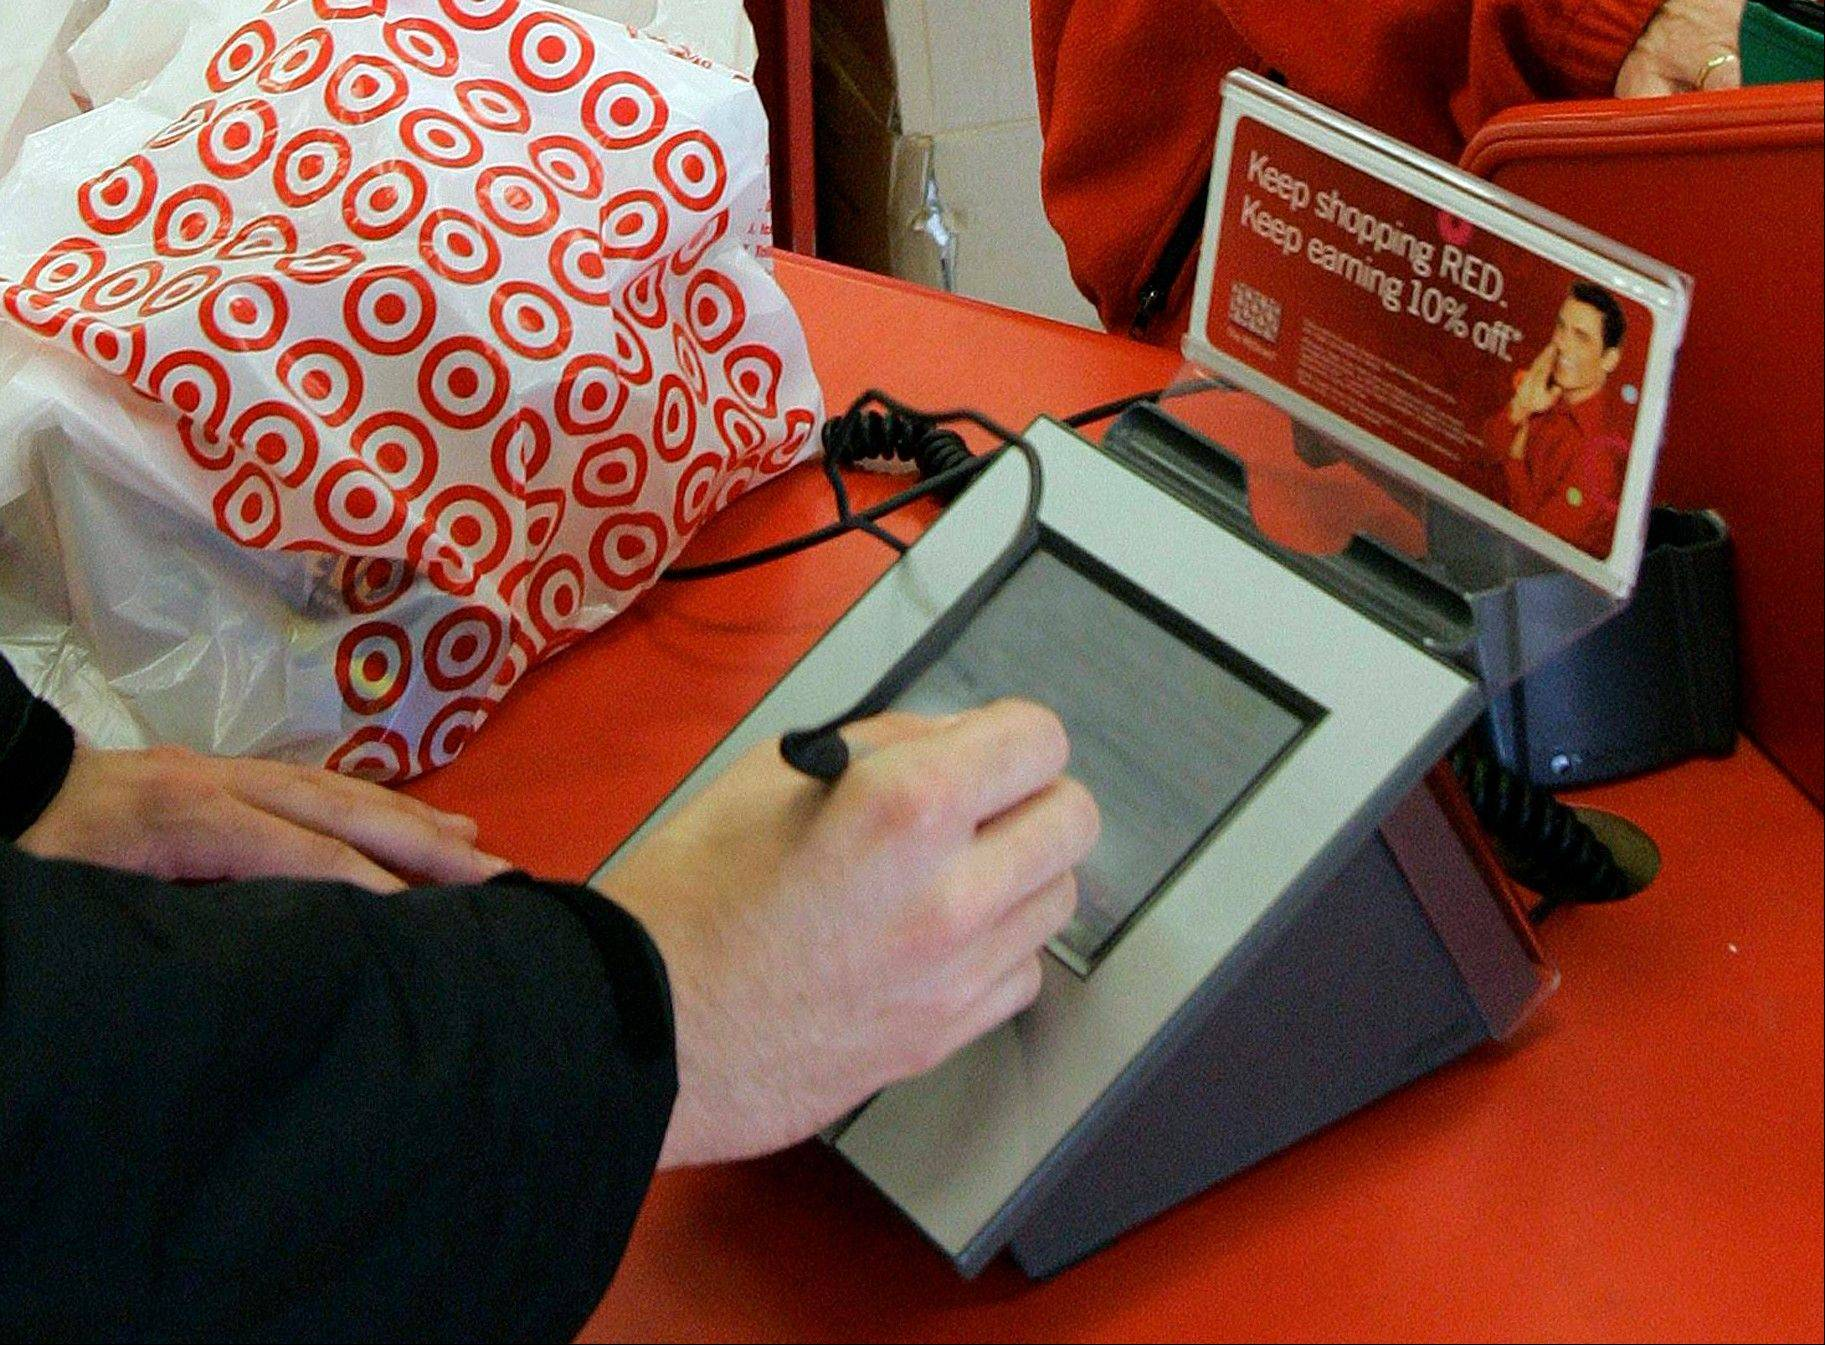 Target said Friday that personal information -- including phone numbers and email and mailing addresses -- was stolen from as many as 70 million customers in its pre-Christmas data breach. That was substantially more customers than Target had previously said were affected.